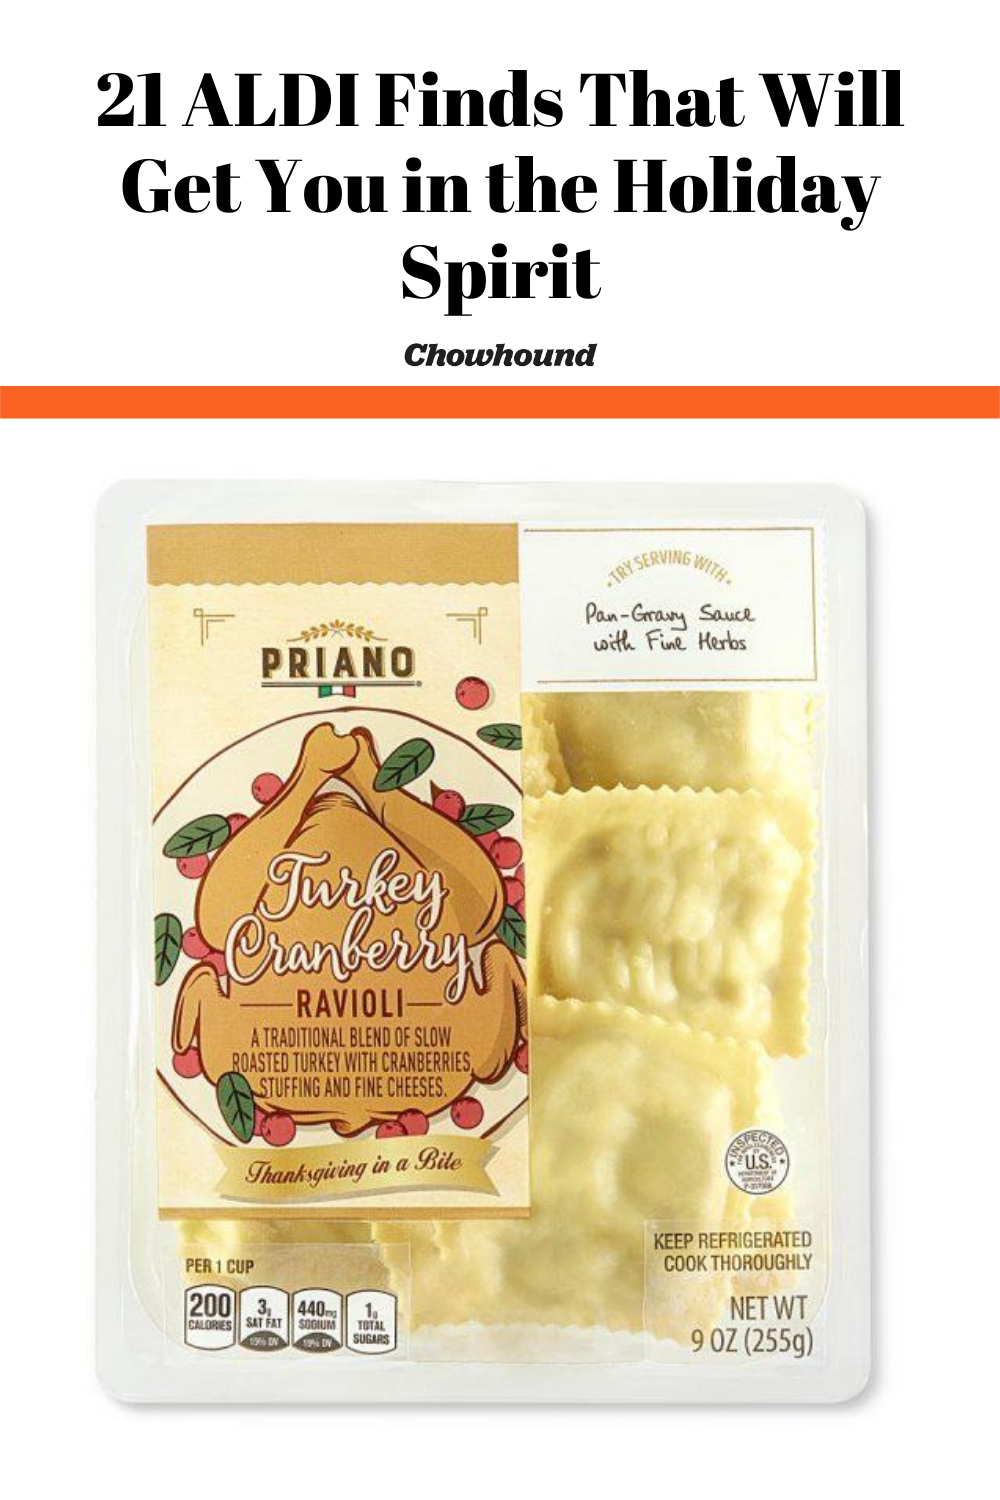 21 ALDI Finds That Will Get You in the Holiday Spirit